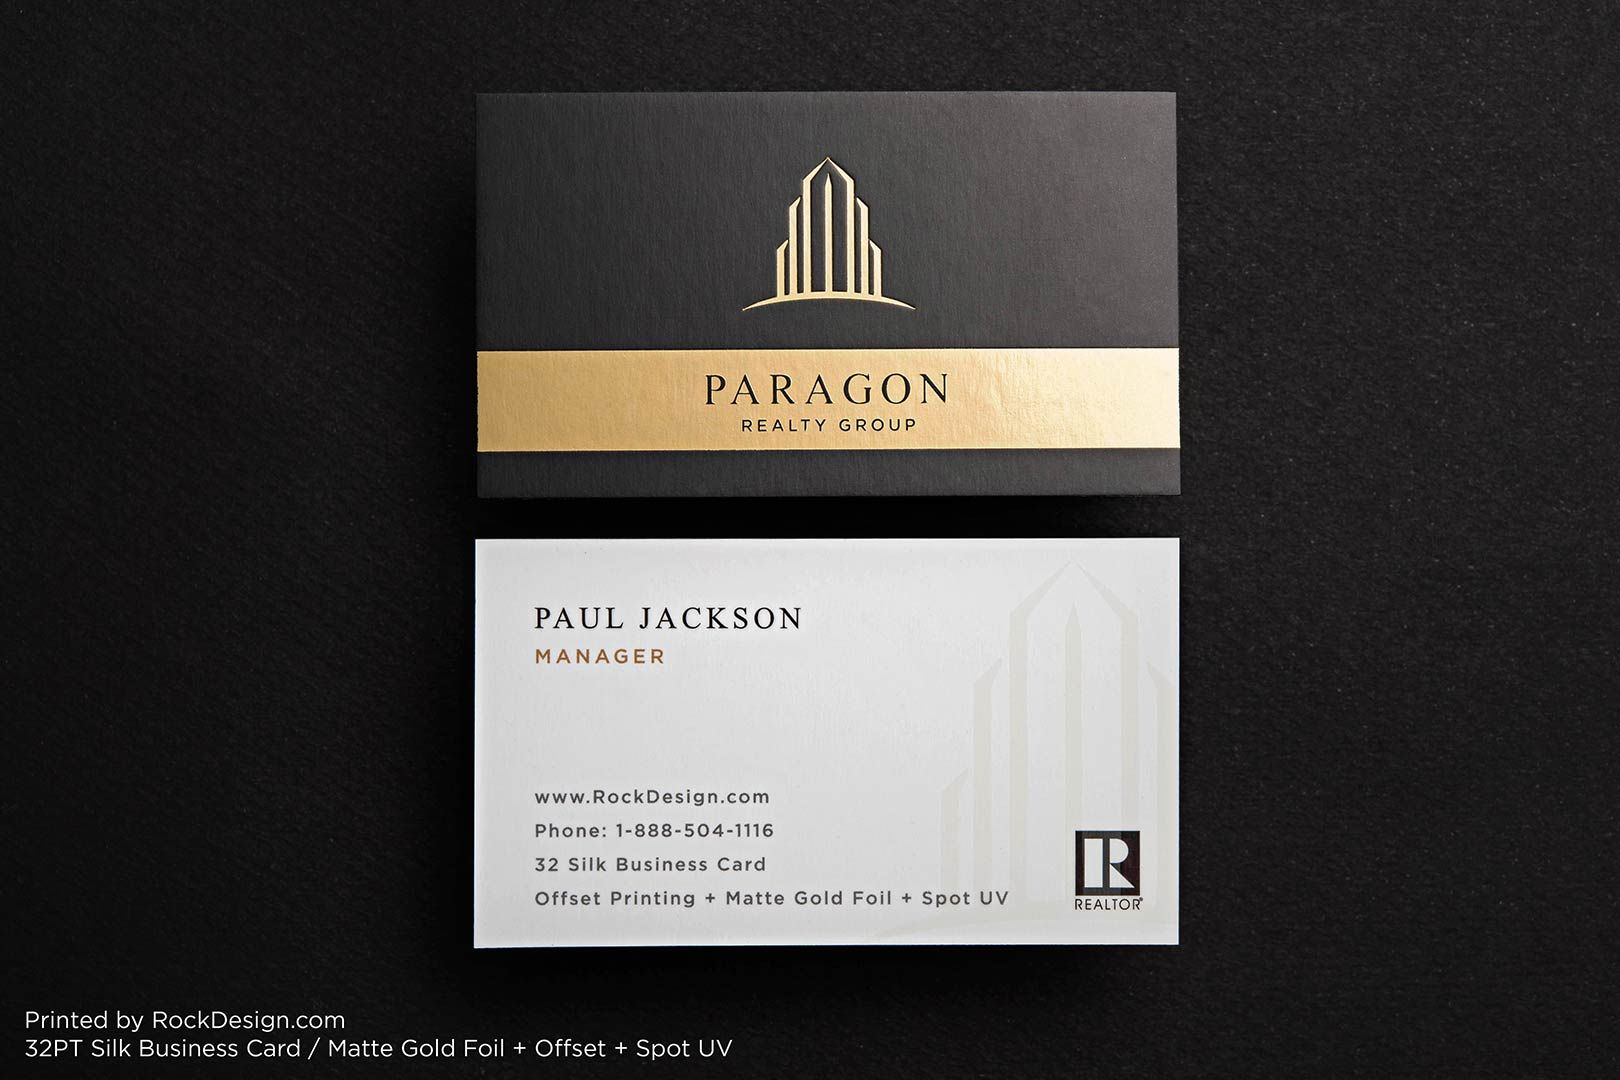 32pt silk business cards rockdesign luxury business card 32pt silk business cards rockdesign luxury business card printing our beautiful silk laminated cardstock is perfect for pairing with foil stampin magicingreecefo Images